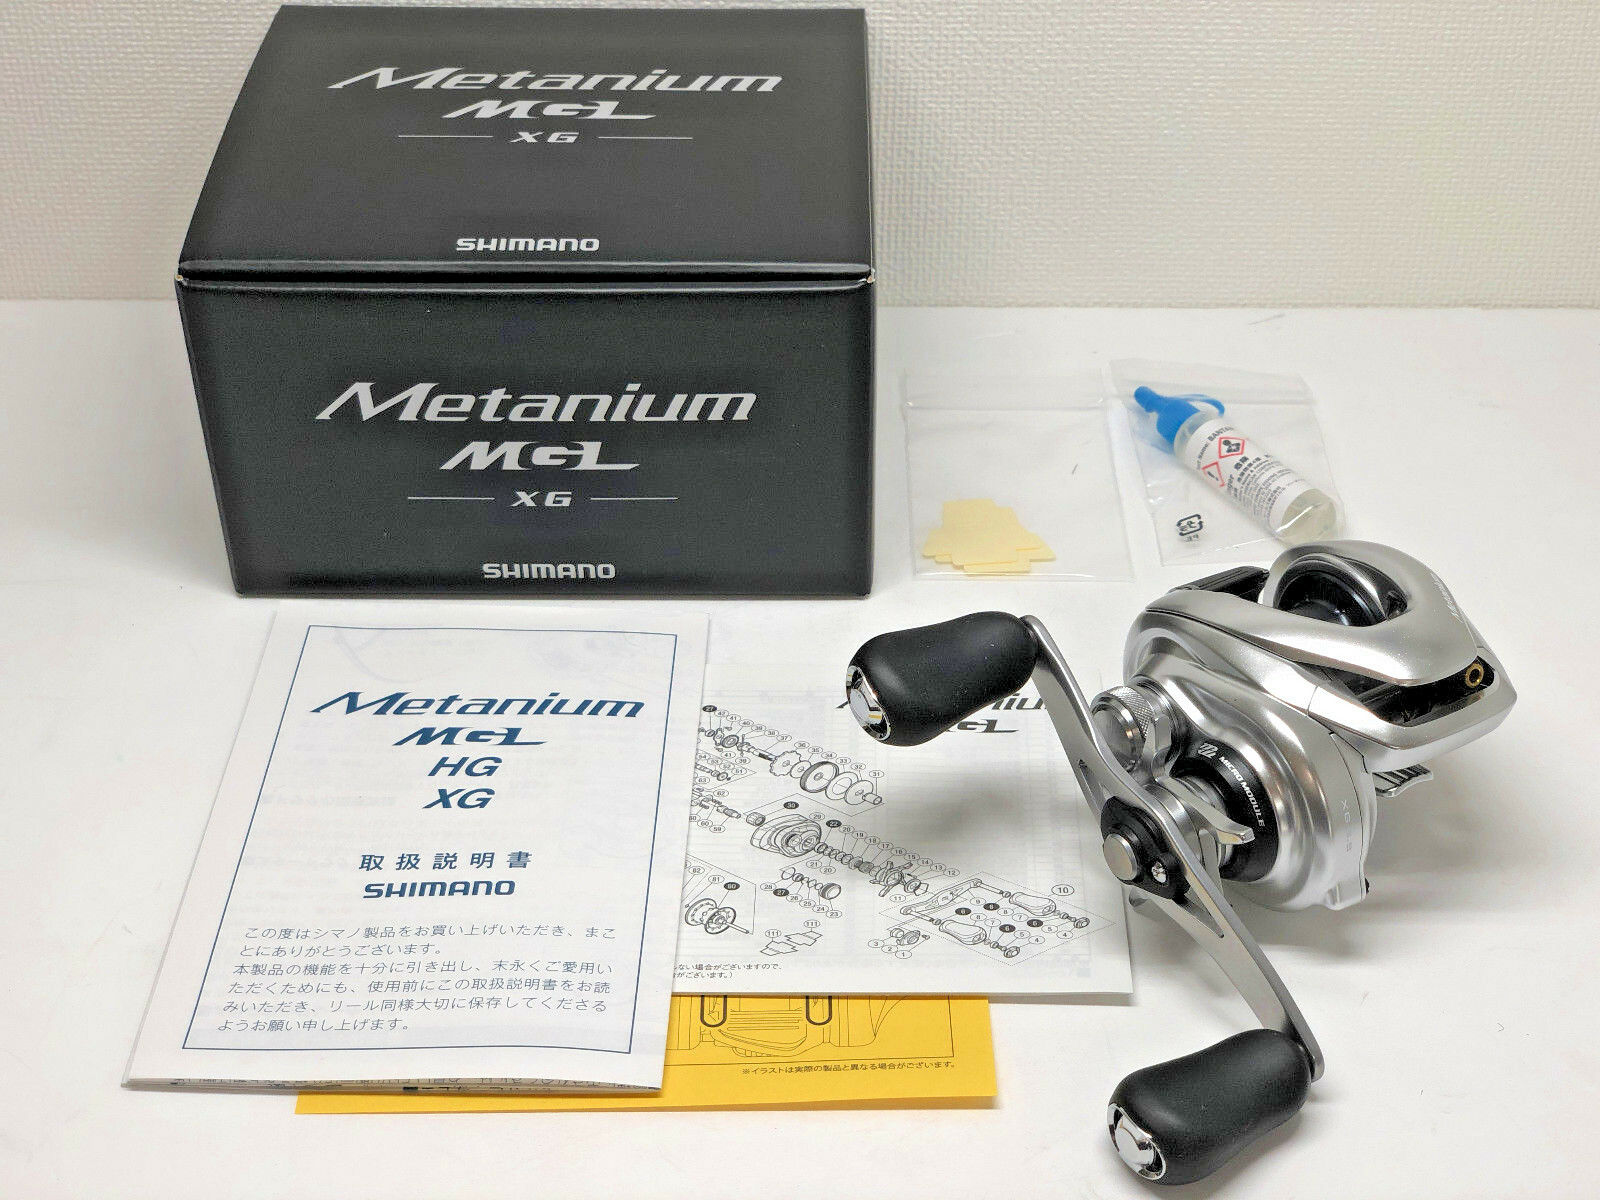 SHIMANO 16 METANIUM MGL XG RIGHT     - Free Shipping from Japan 0efc47